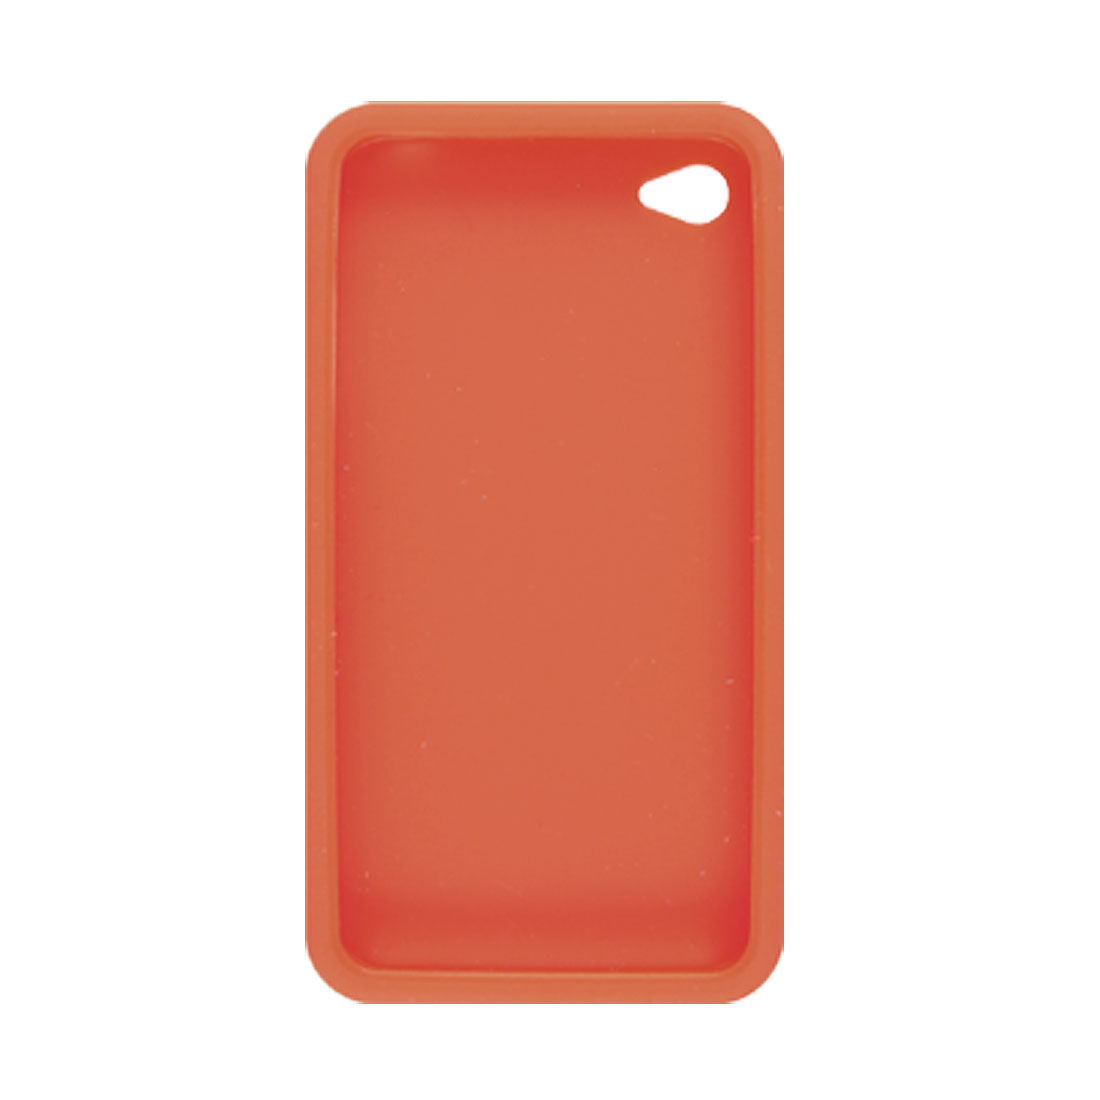 Silicone Skin Cover + Screen Protector for Apple iPhone 4 Red